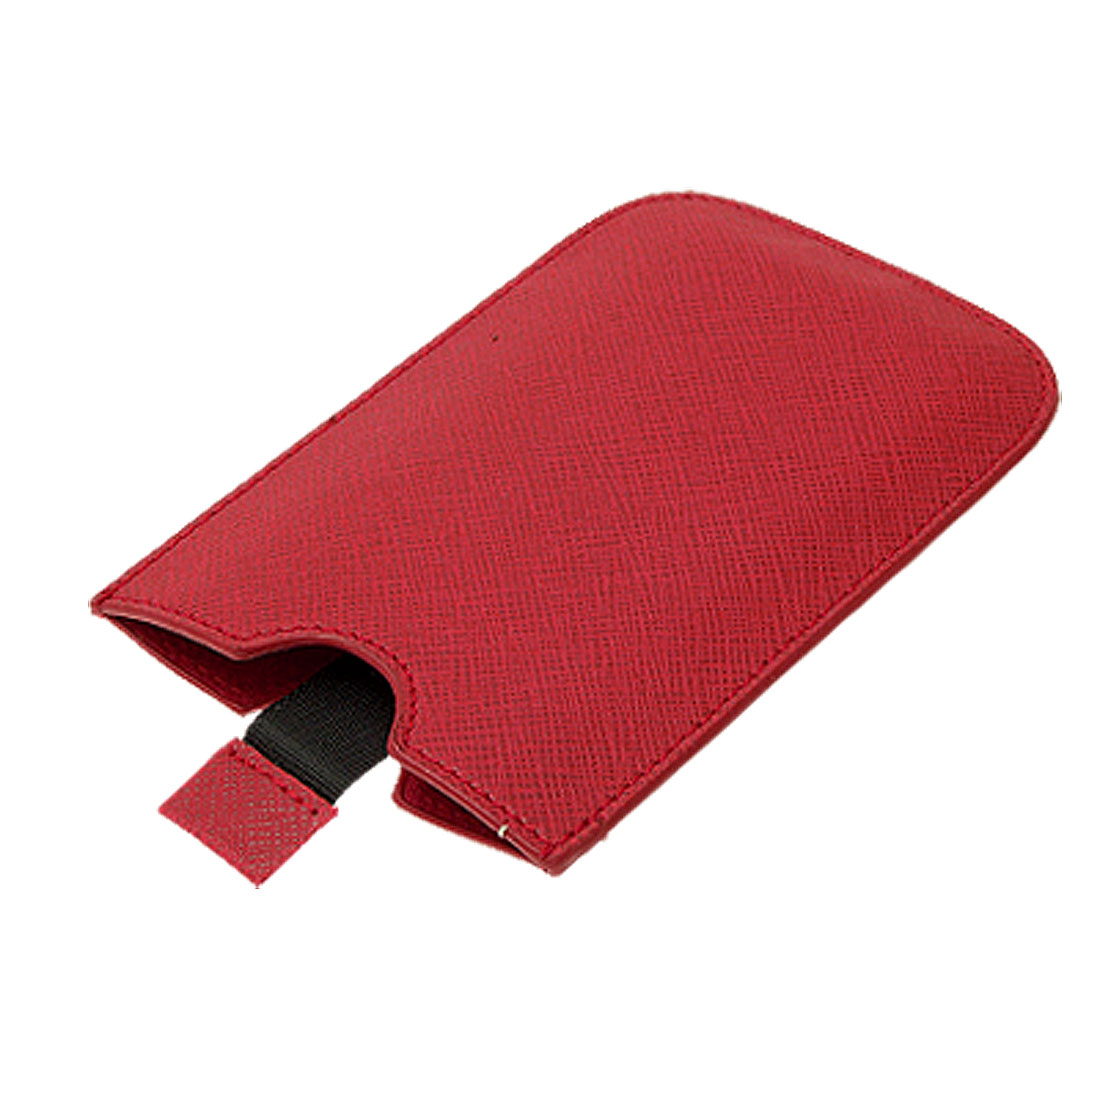 Protective Leather Case Sleeve Cover Red for Apple iPhone 3G